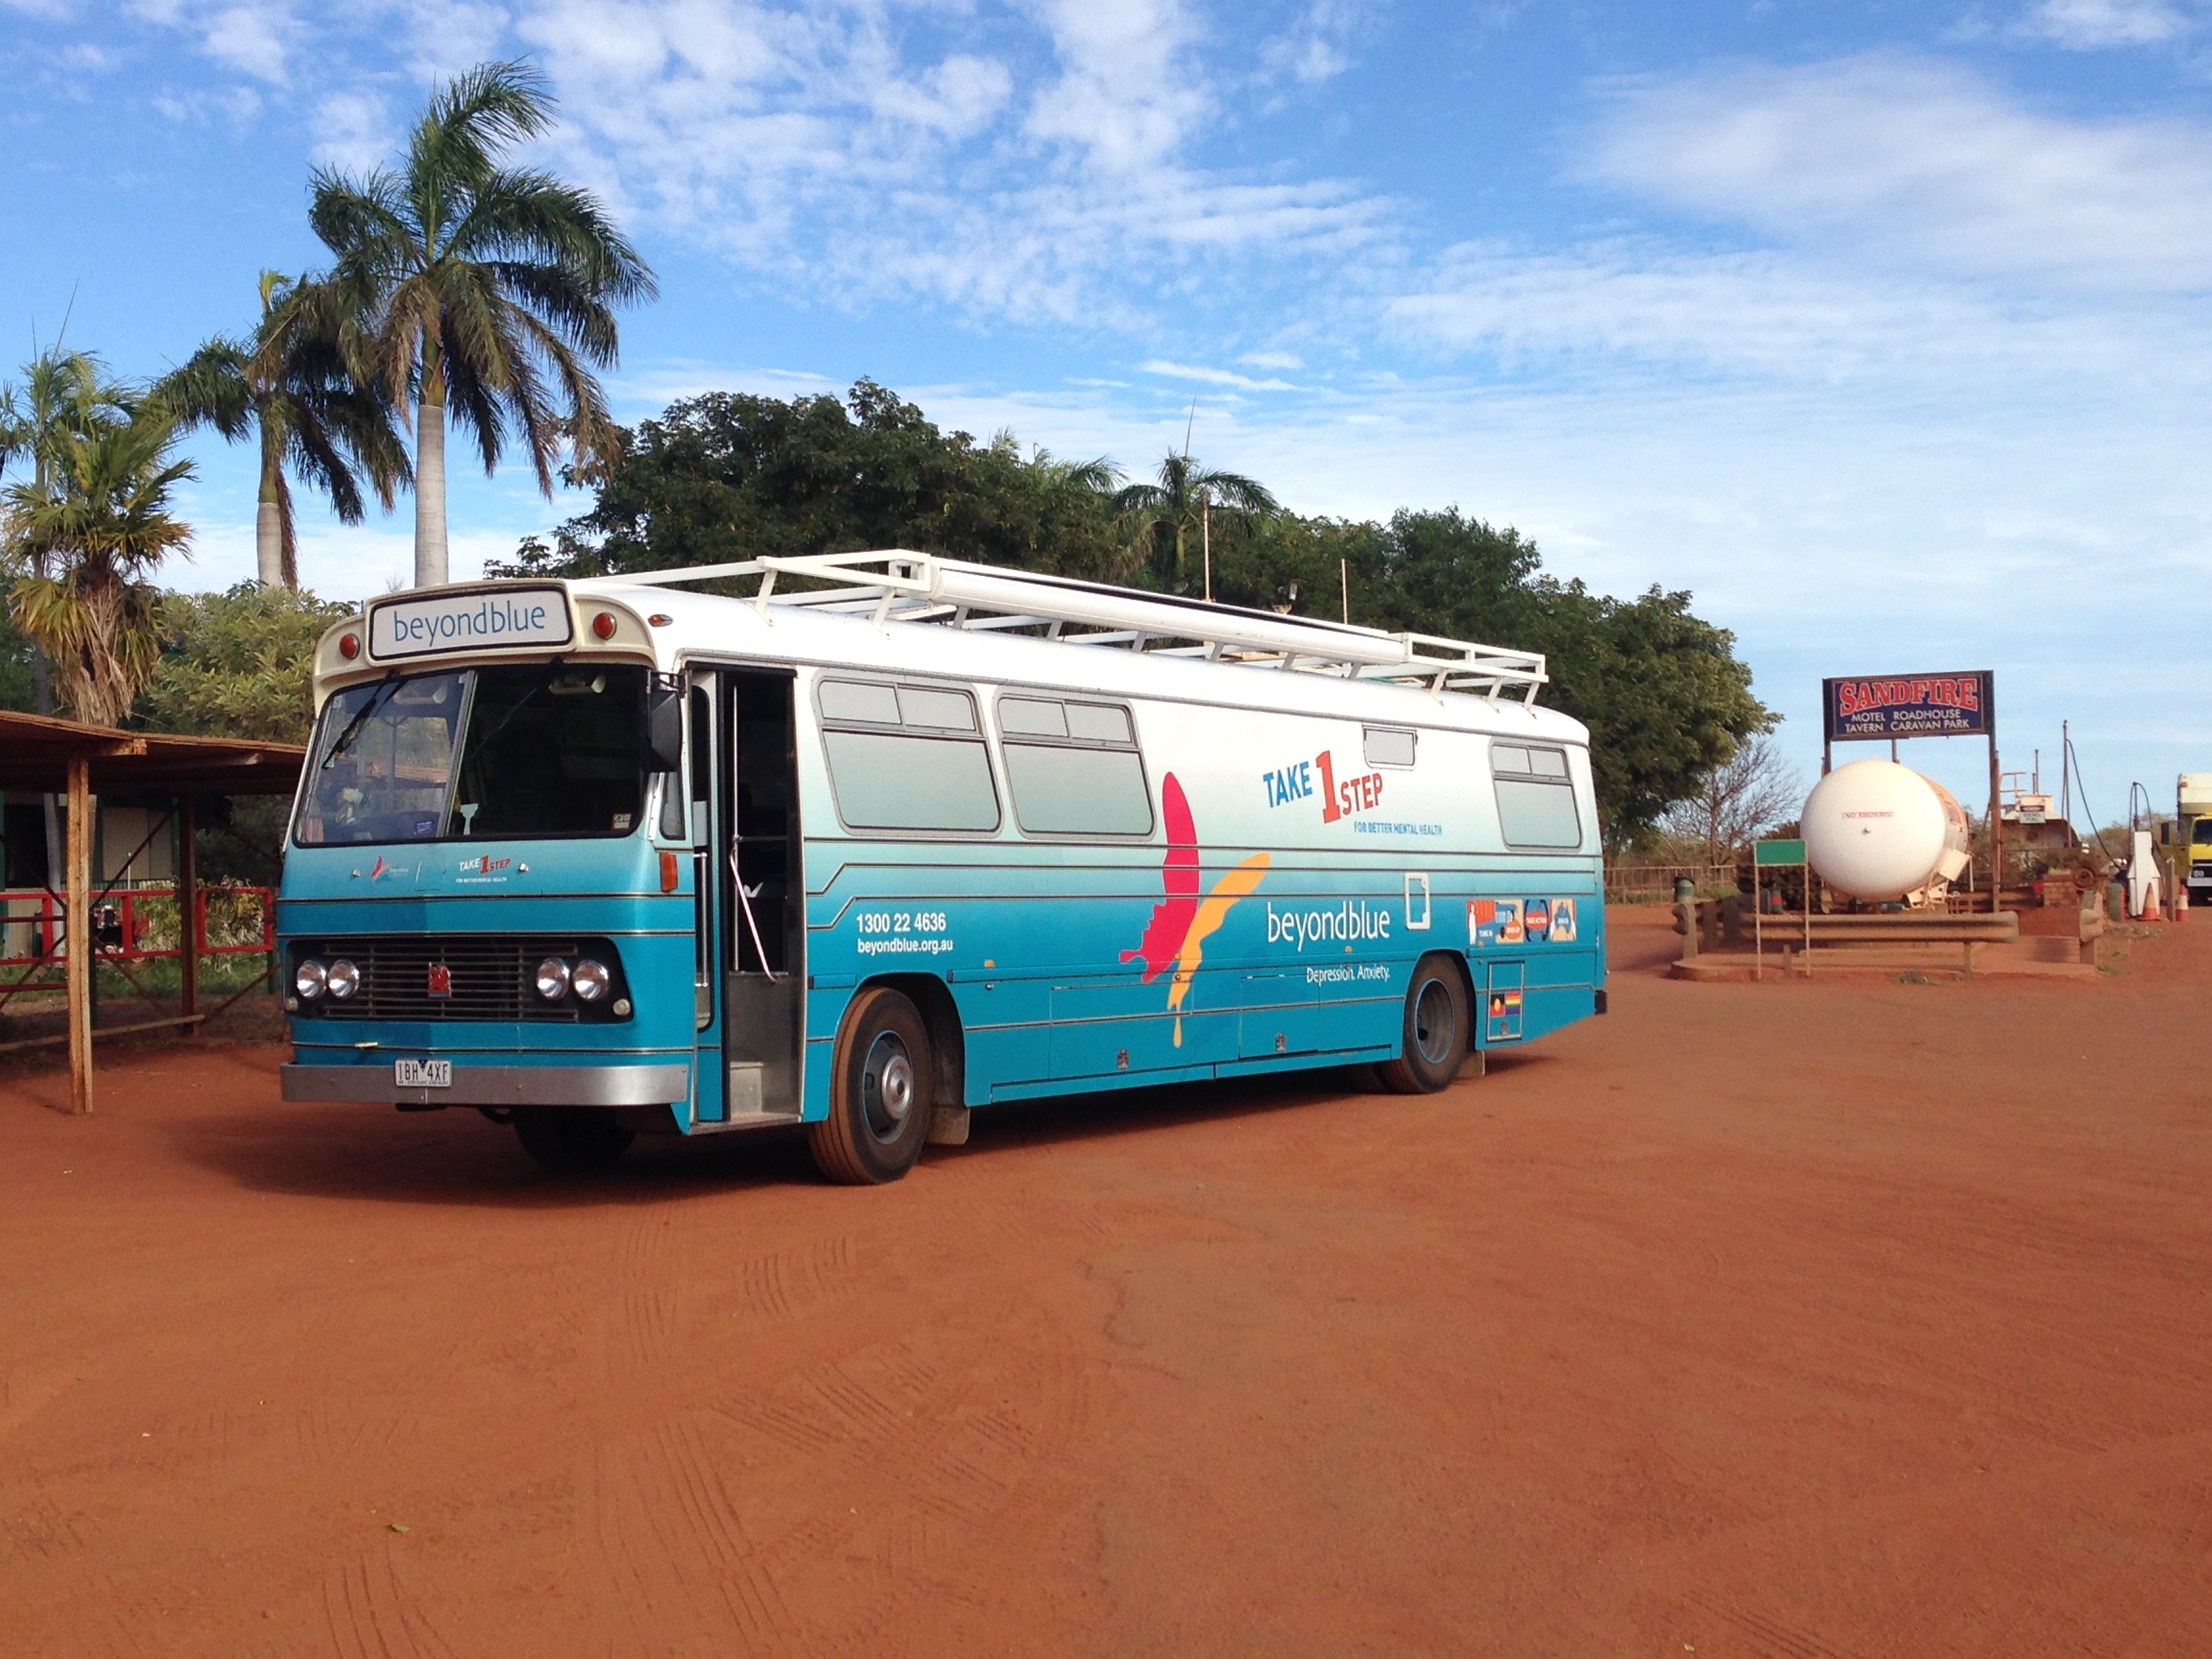 Departing Sandfire Roadhouse for the trip north to Broome: WA.